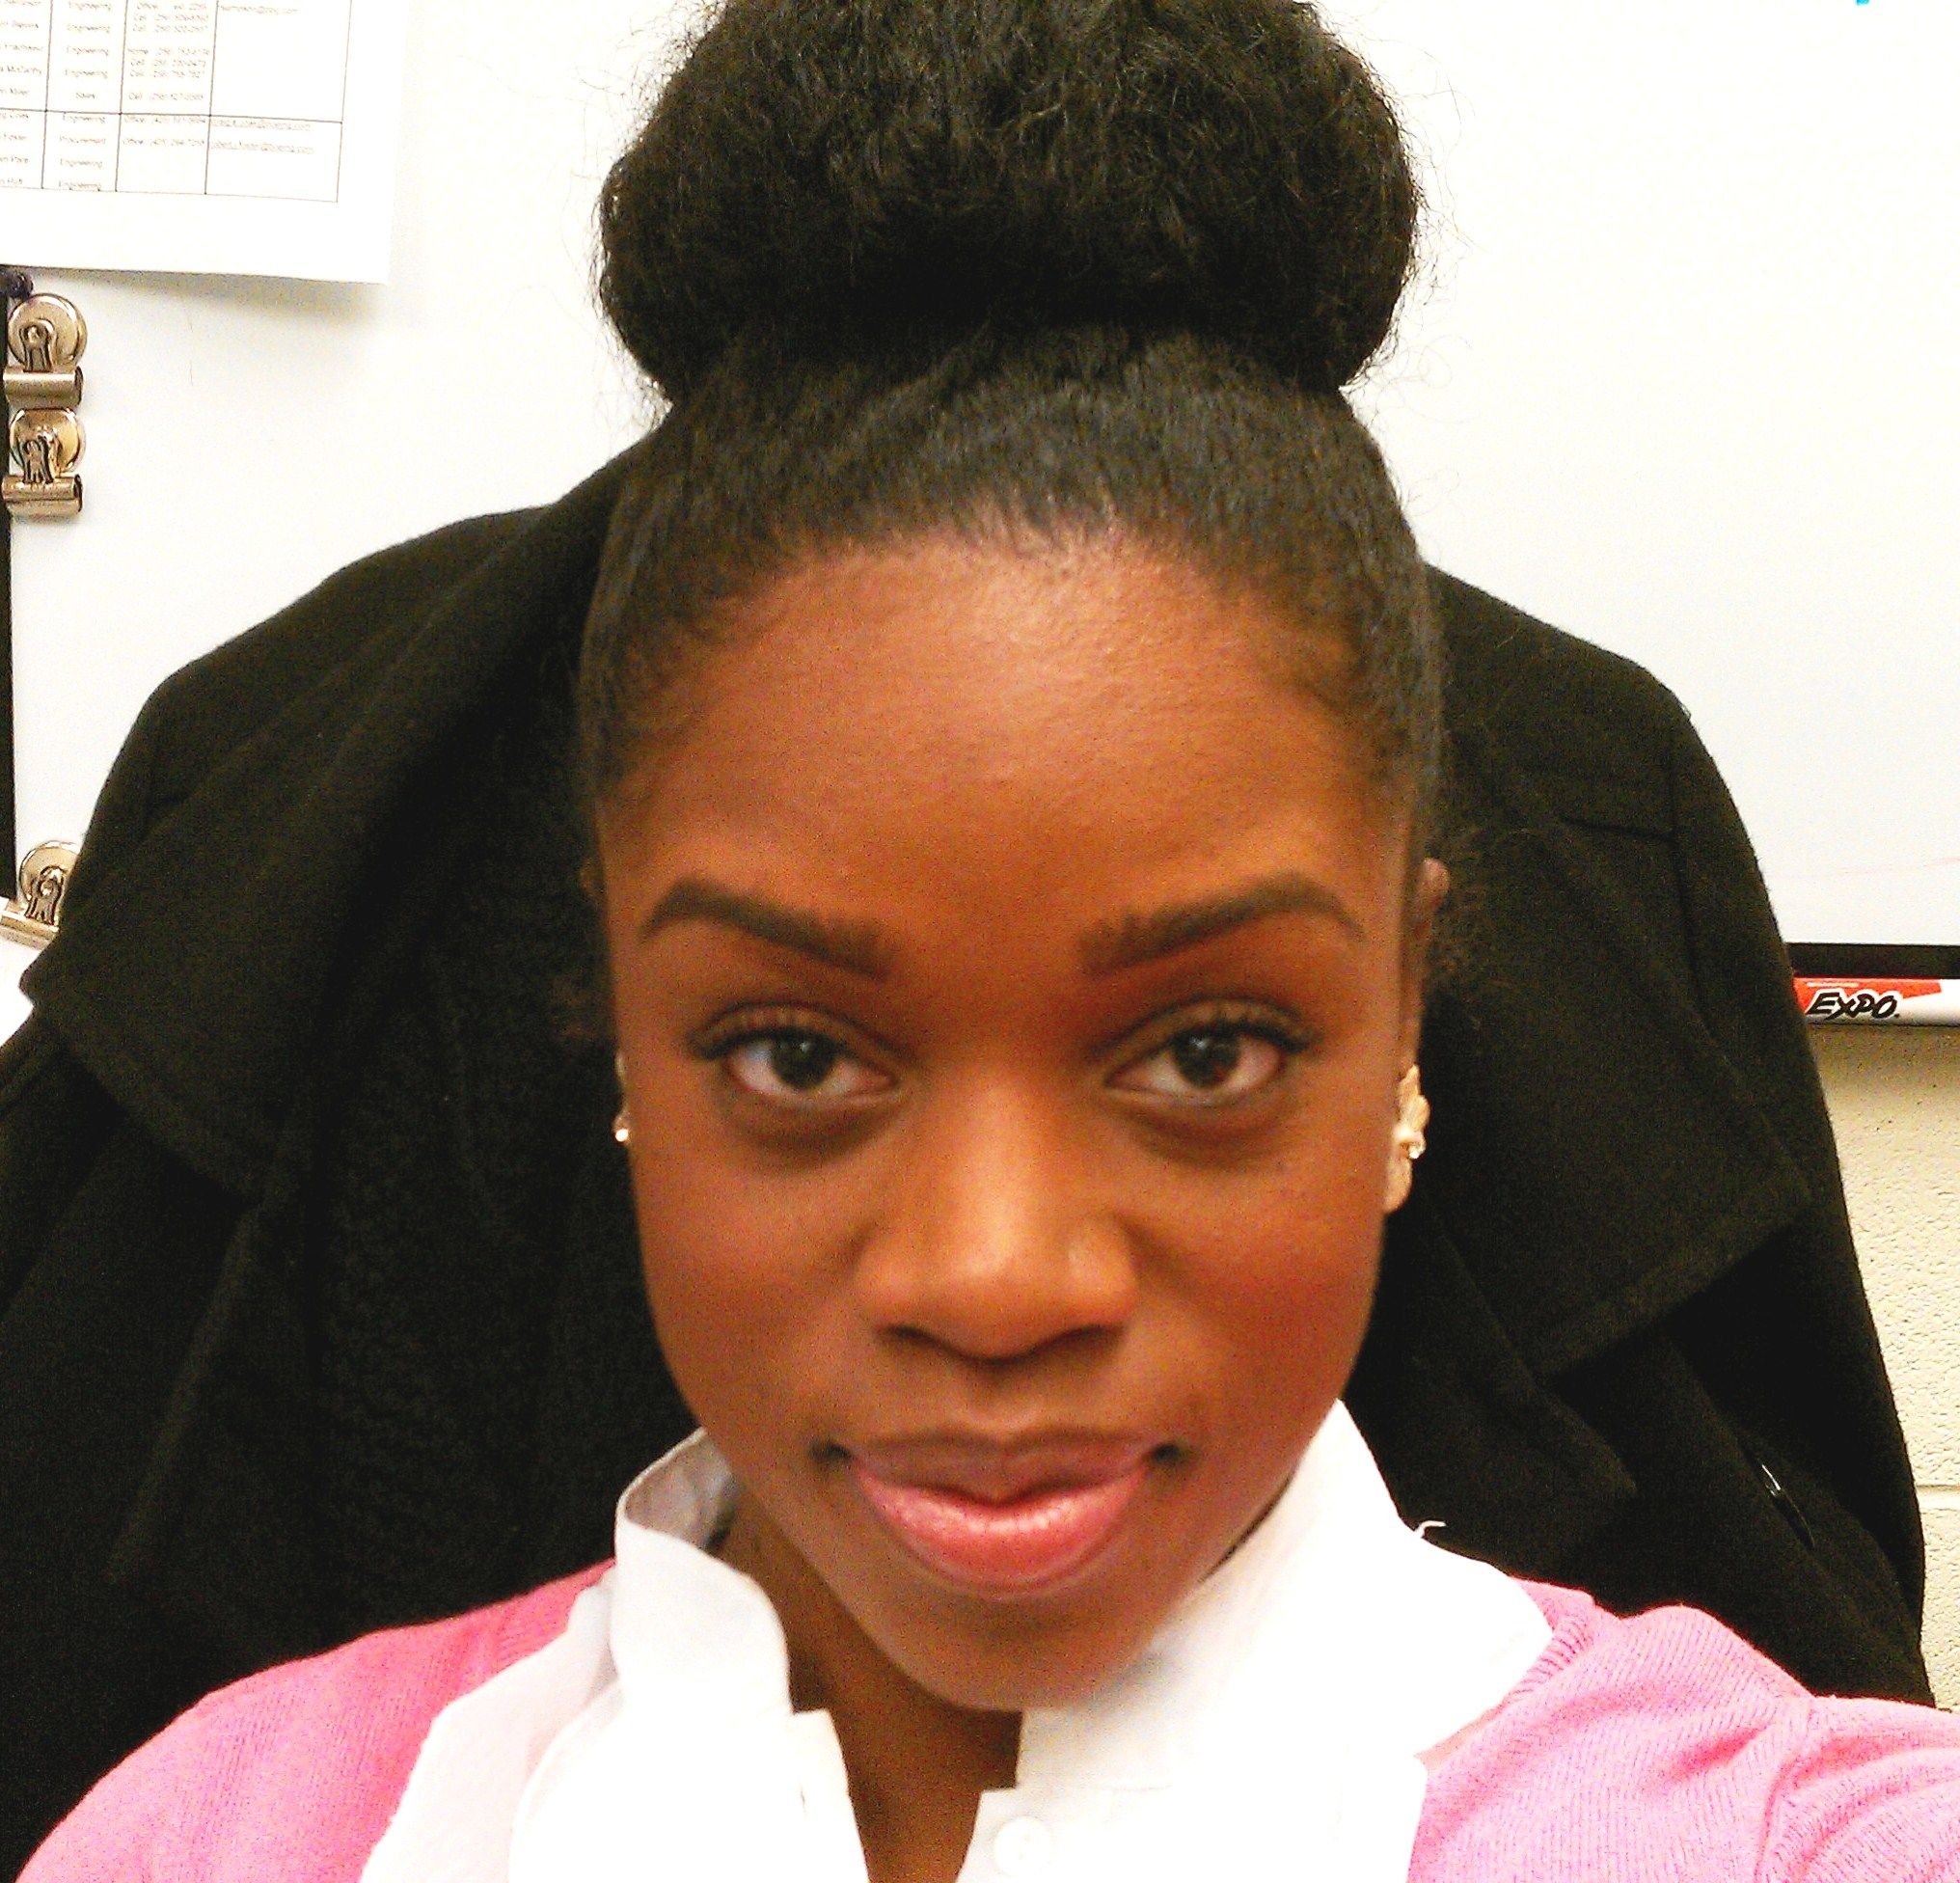 Natural Hairstyles For Job Interviews Delectable Job Interview Hairstyles For Natural Hair  Google Search